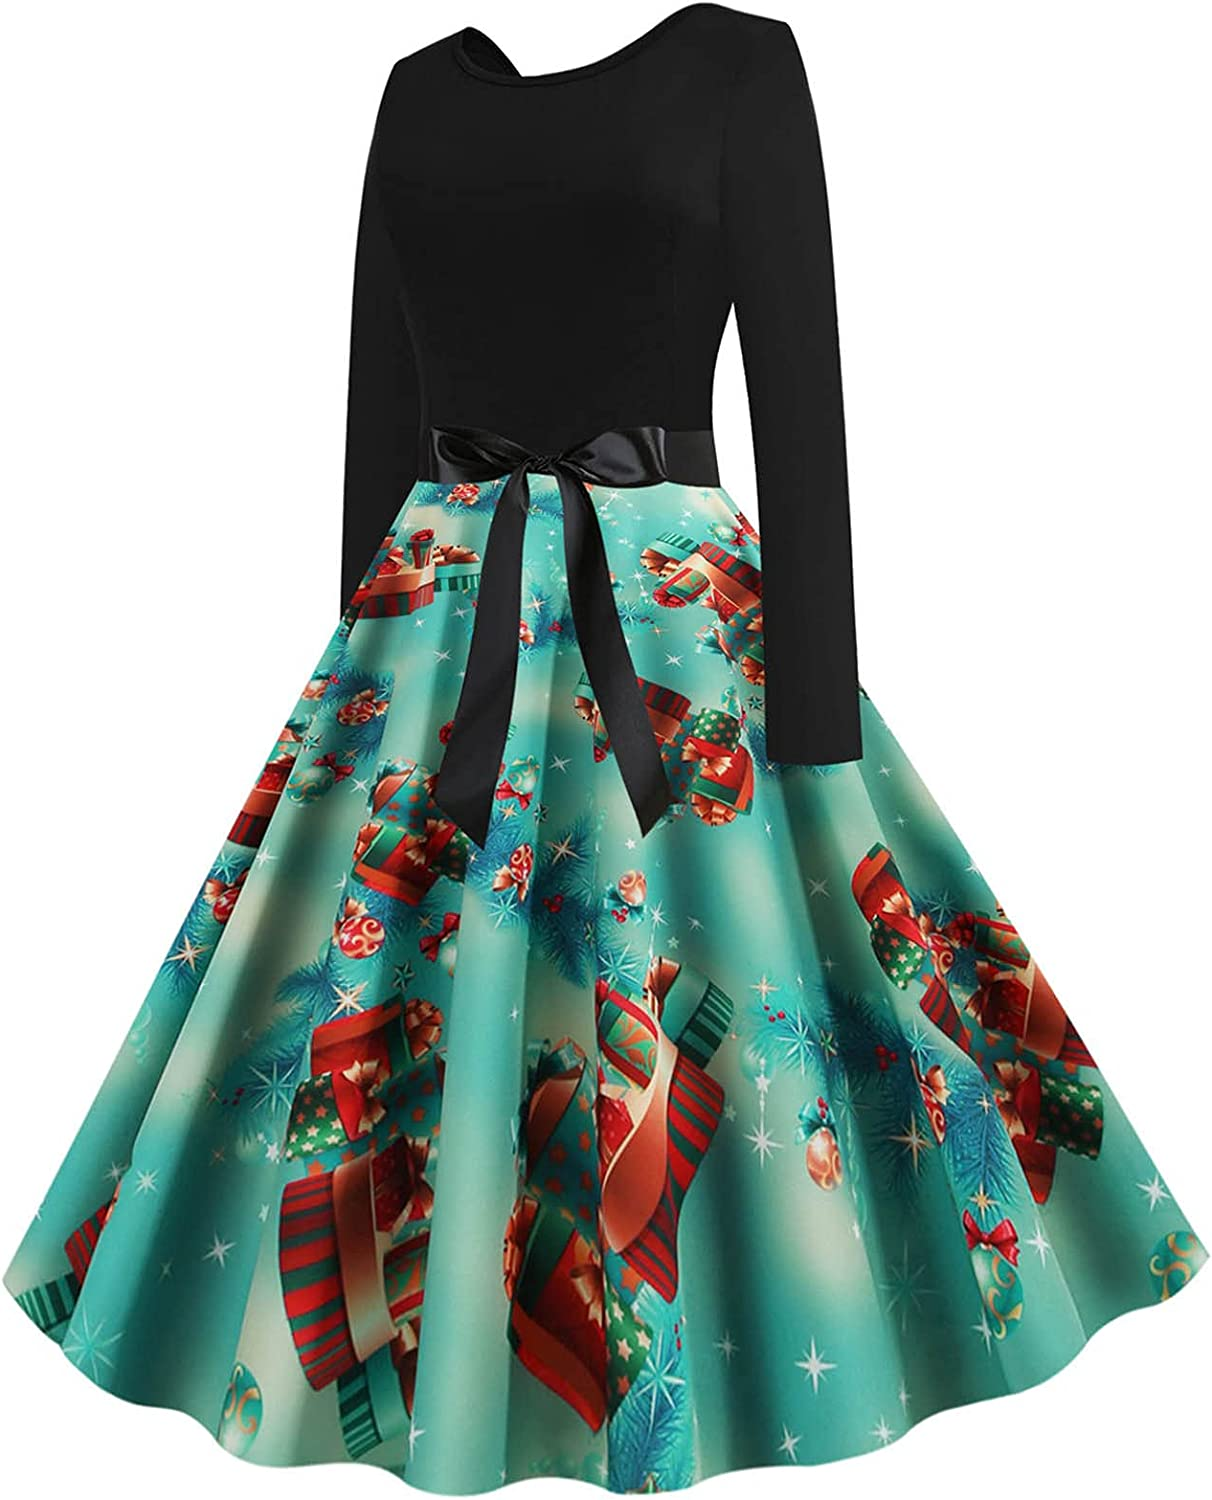 Hatoys Womens Dresses Bow Tie Christmas Austin Mall Dress Laced Waist Max 80% OFF Orname